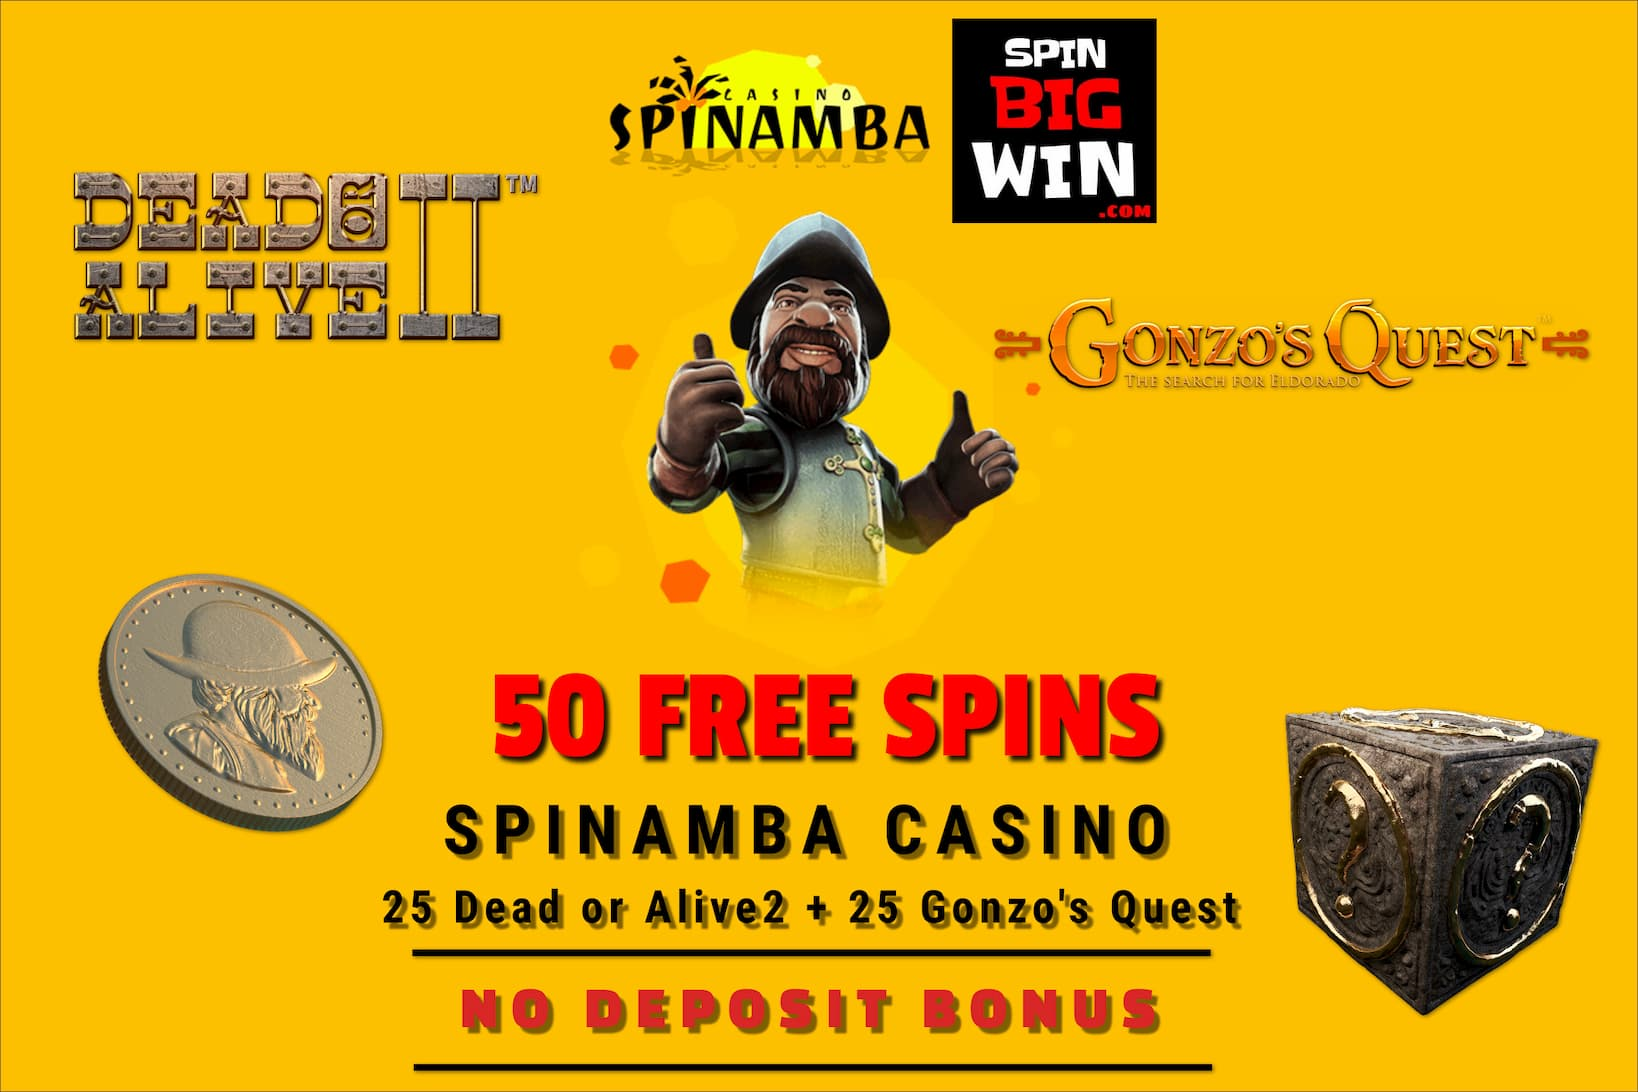 Spinamba Casino Review No Deposit Bonus (50 Free Spins) is in this photo!